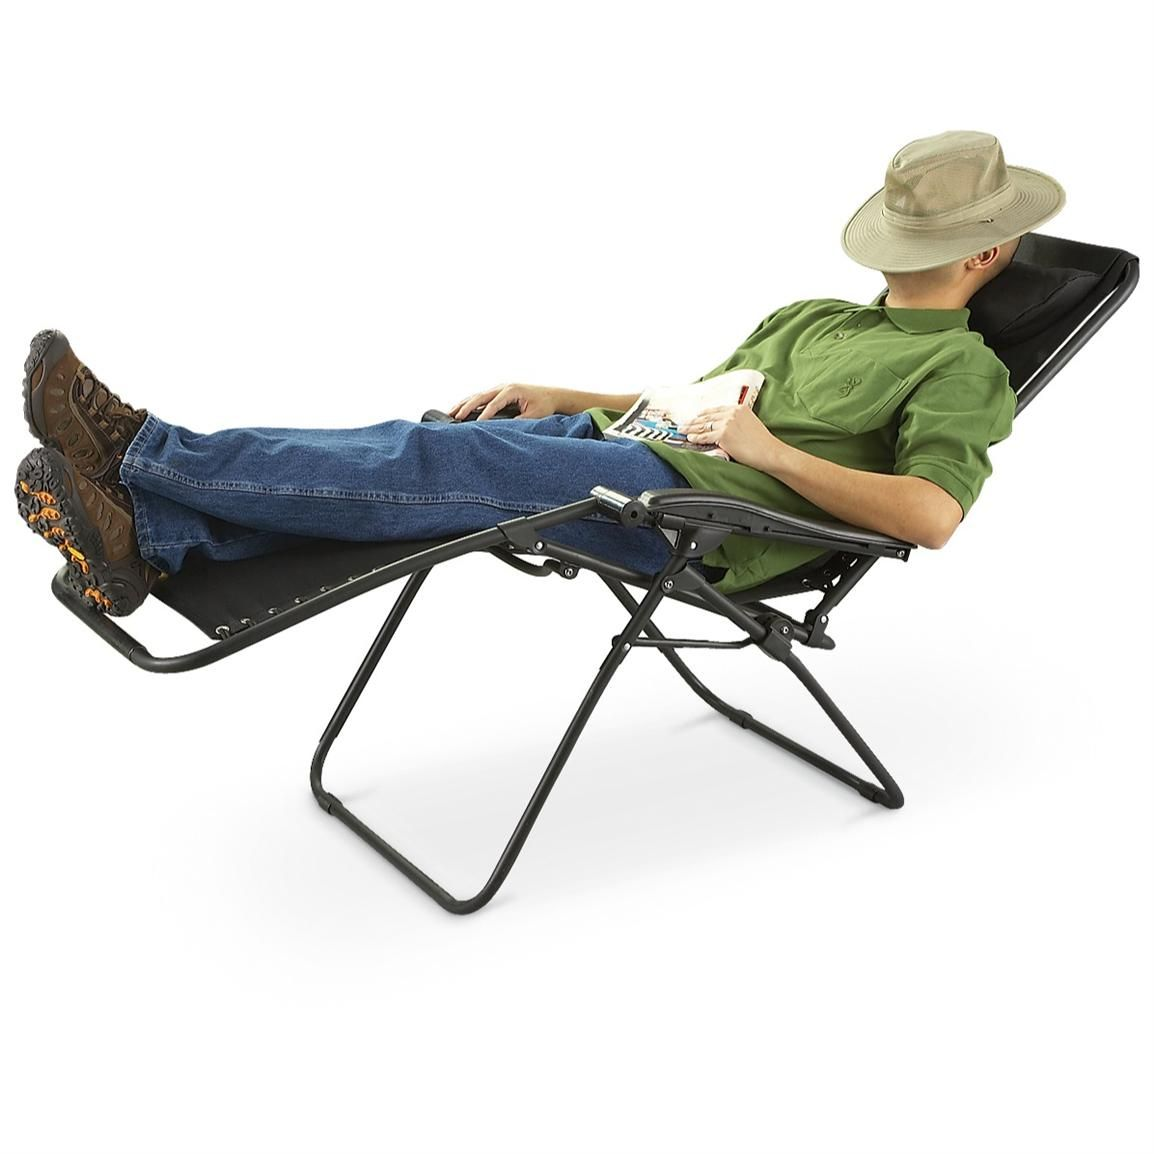 Guide Gear Zero Gravity Lounger Is So Comfortable You Can Sleep